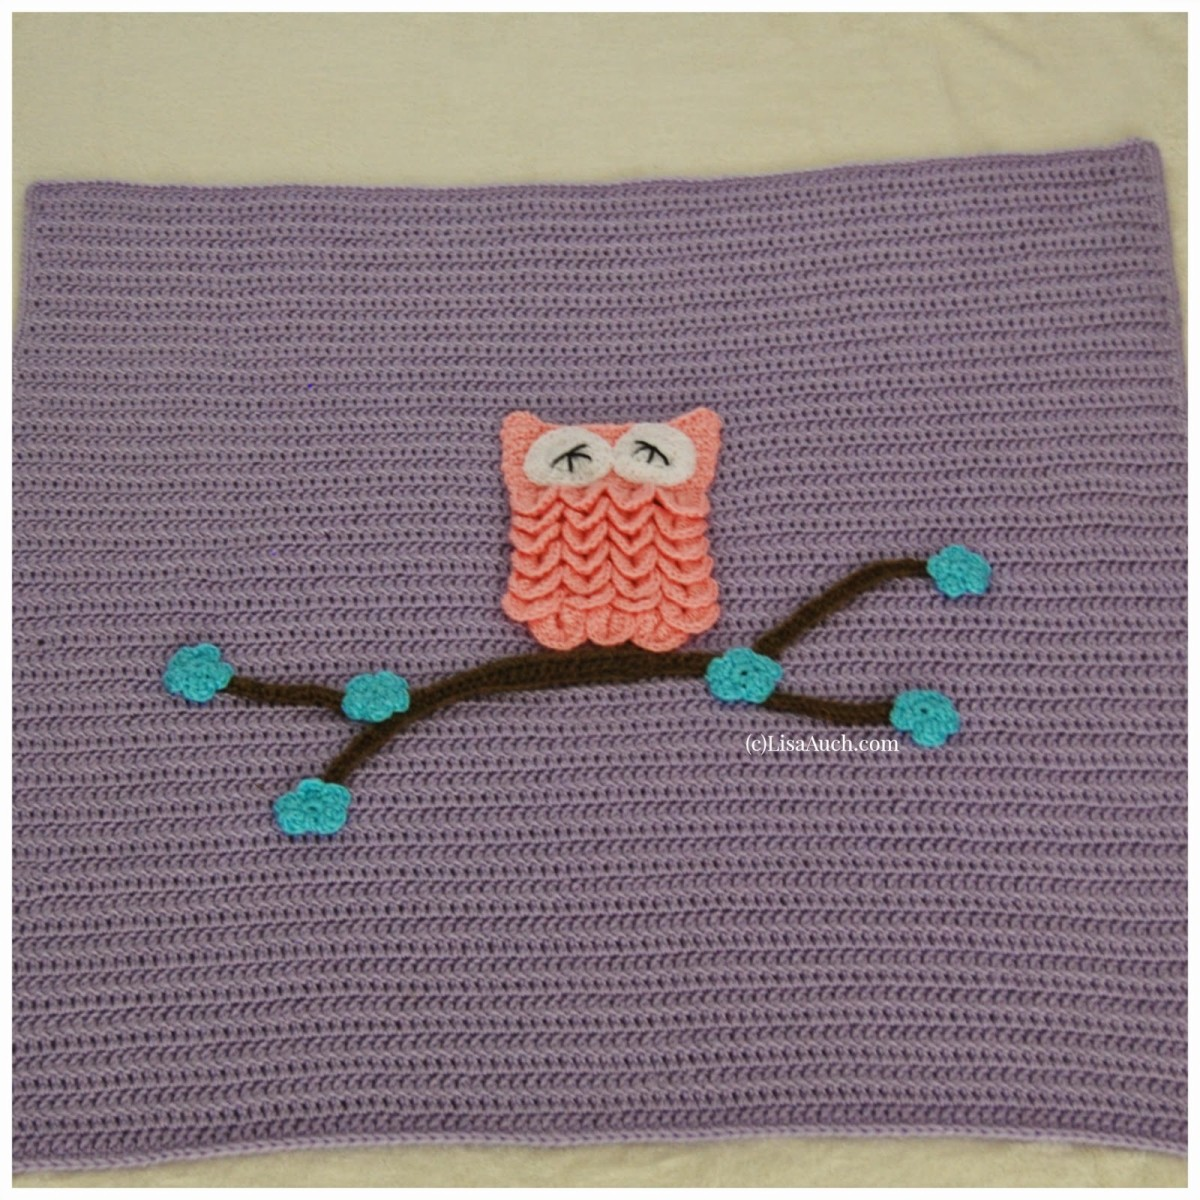 Easy Crochet Baby Blanket Tutorials : How To Crochet An Easy Baby Blanket Ideal for Beginners ...